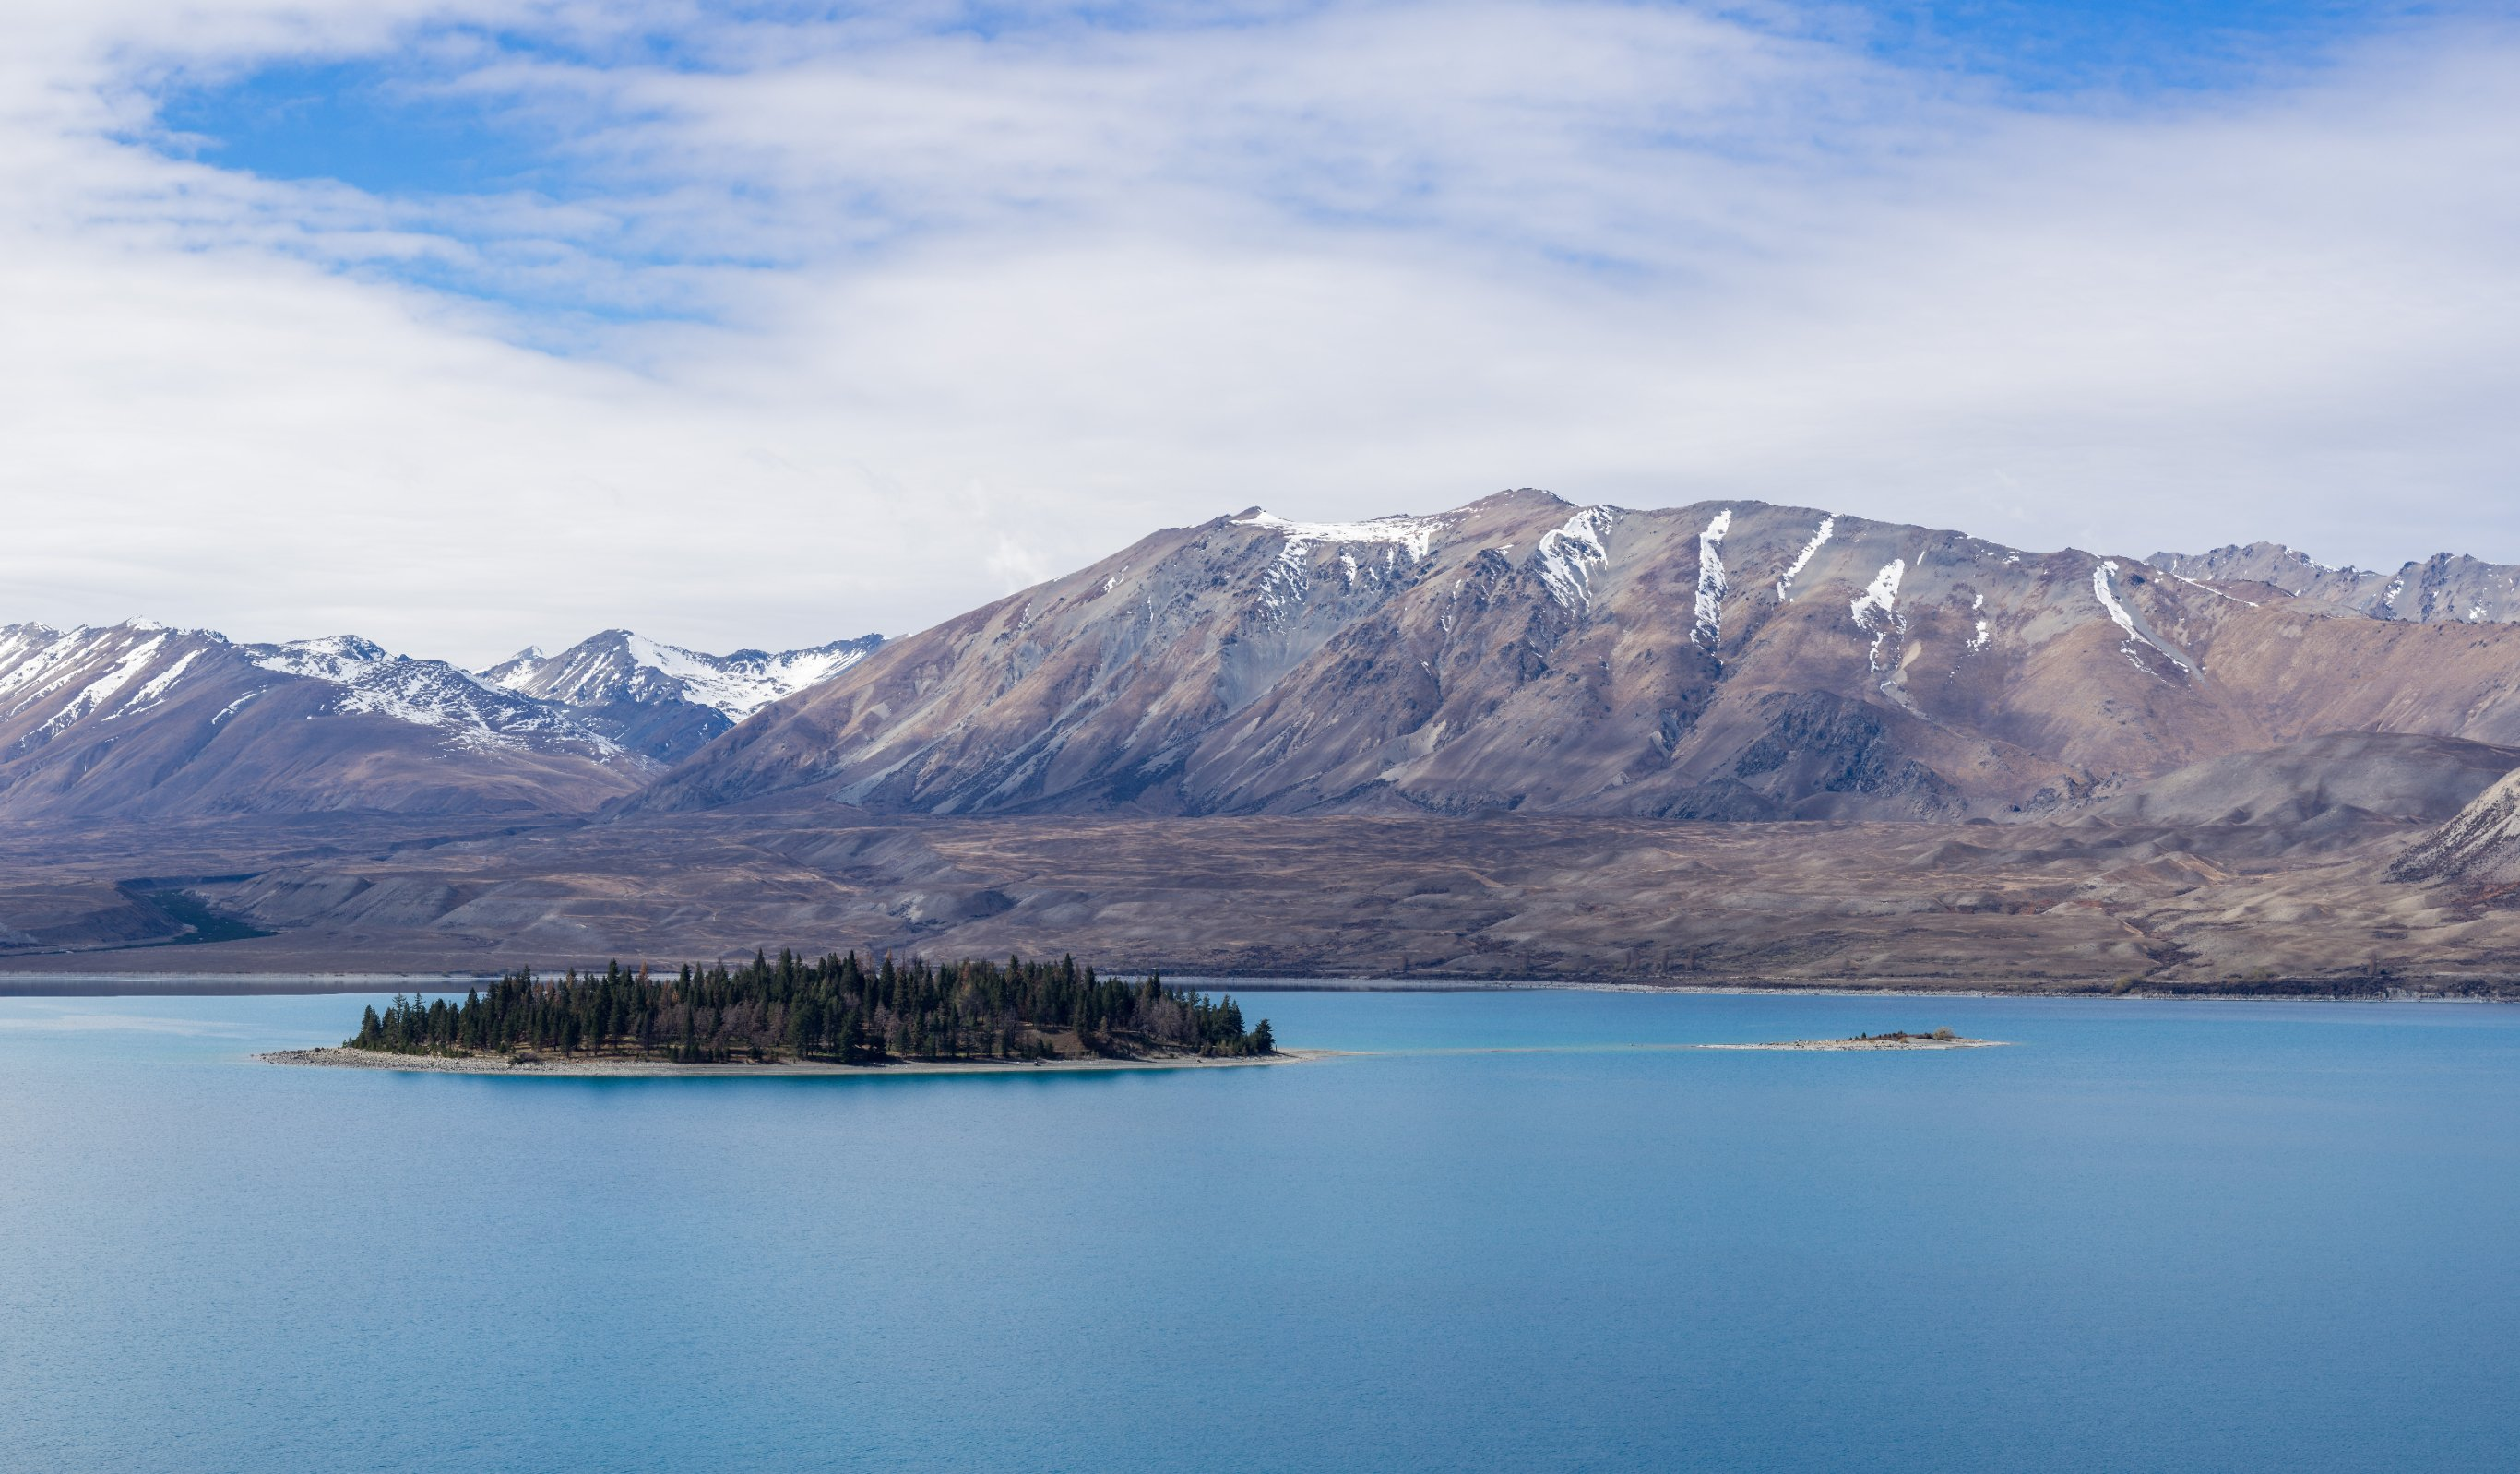 3-Day Luxury Escape to the Magical Mackenzie Region - New Zealand Itinerary